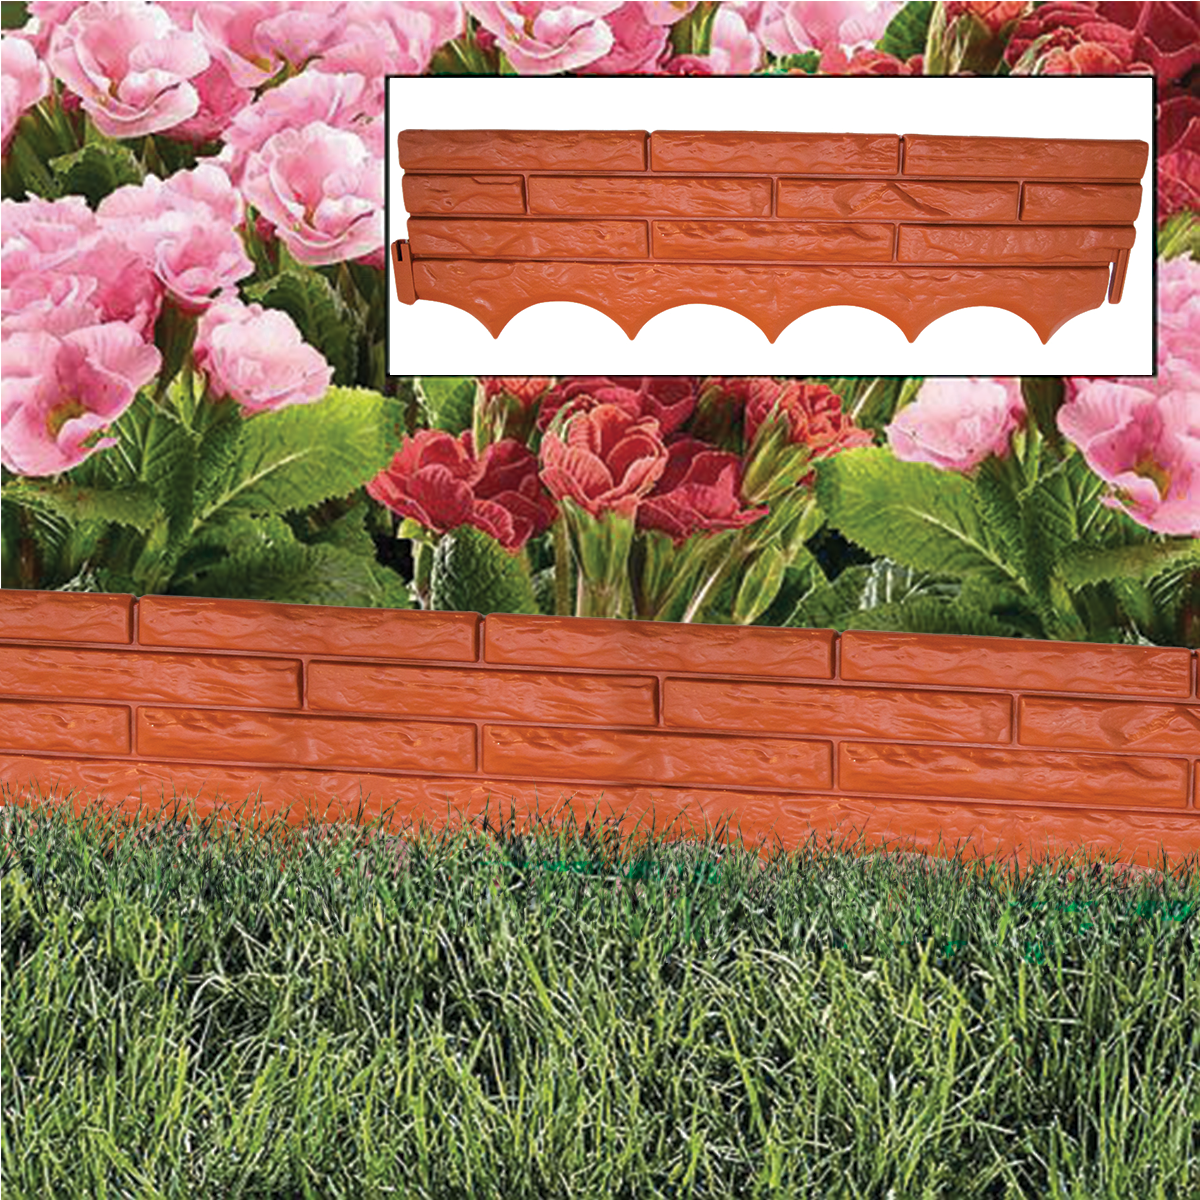 Red brick wall garden edging plastic lawn flower bed for Garden trim